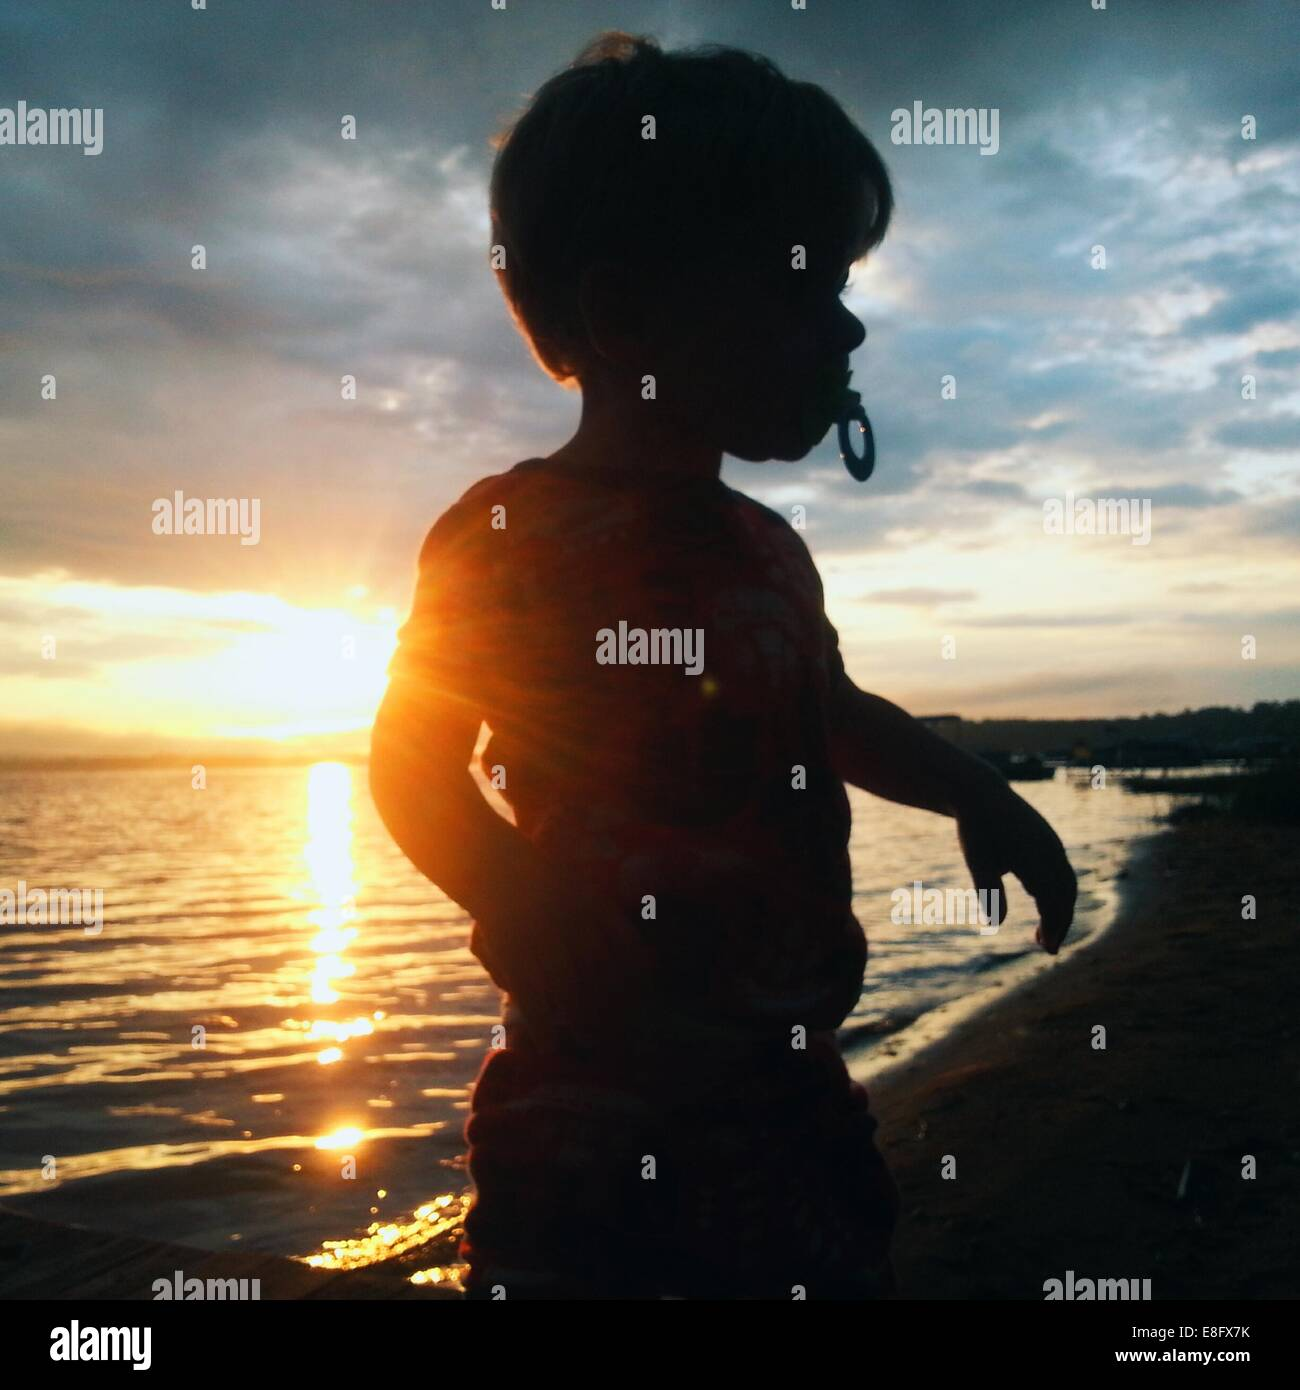 USA, Michigan, Missaukee County, Lake City, Silhouetted junge spielt am Strand bei Sonnenaufgang Stockbild